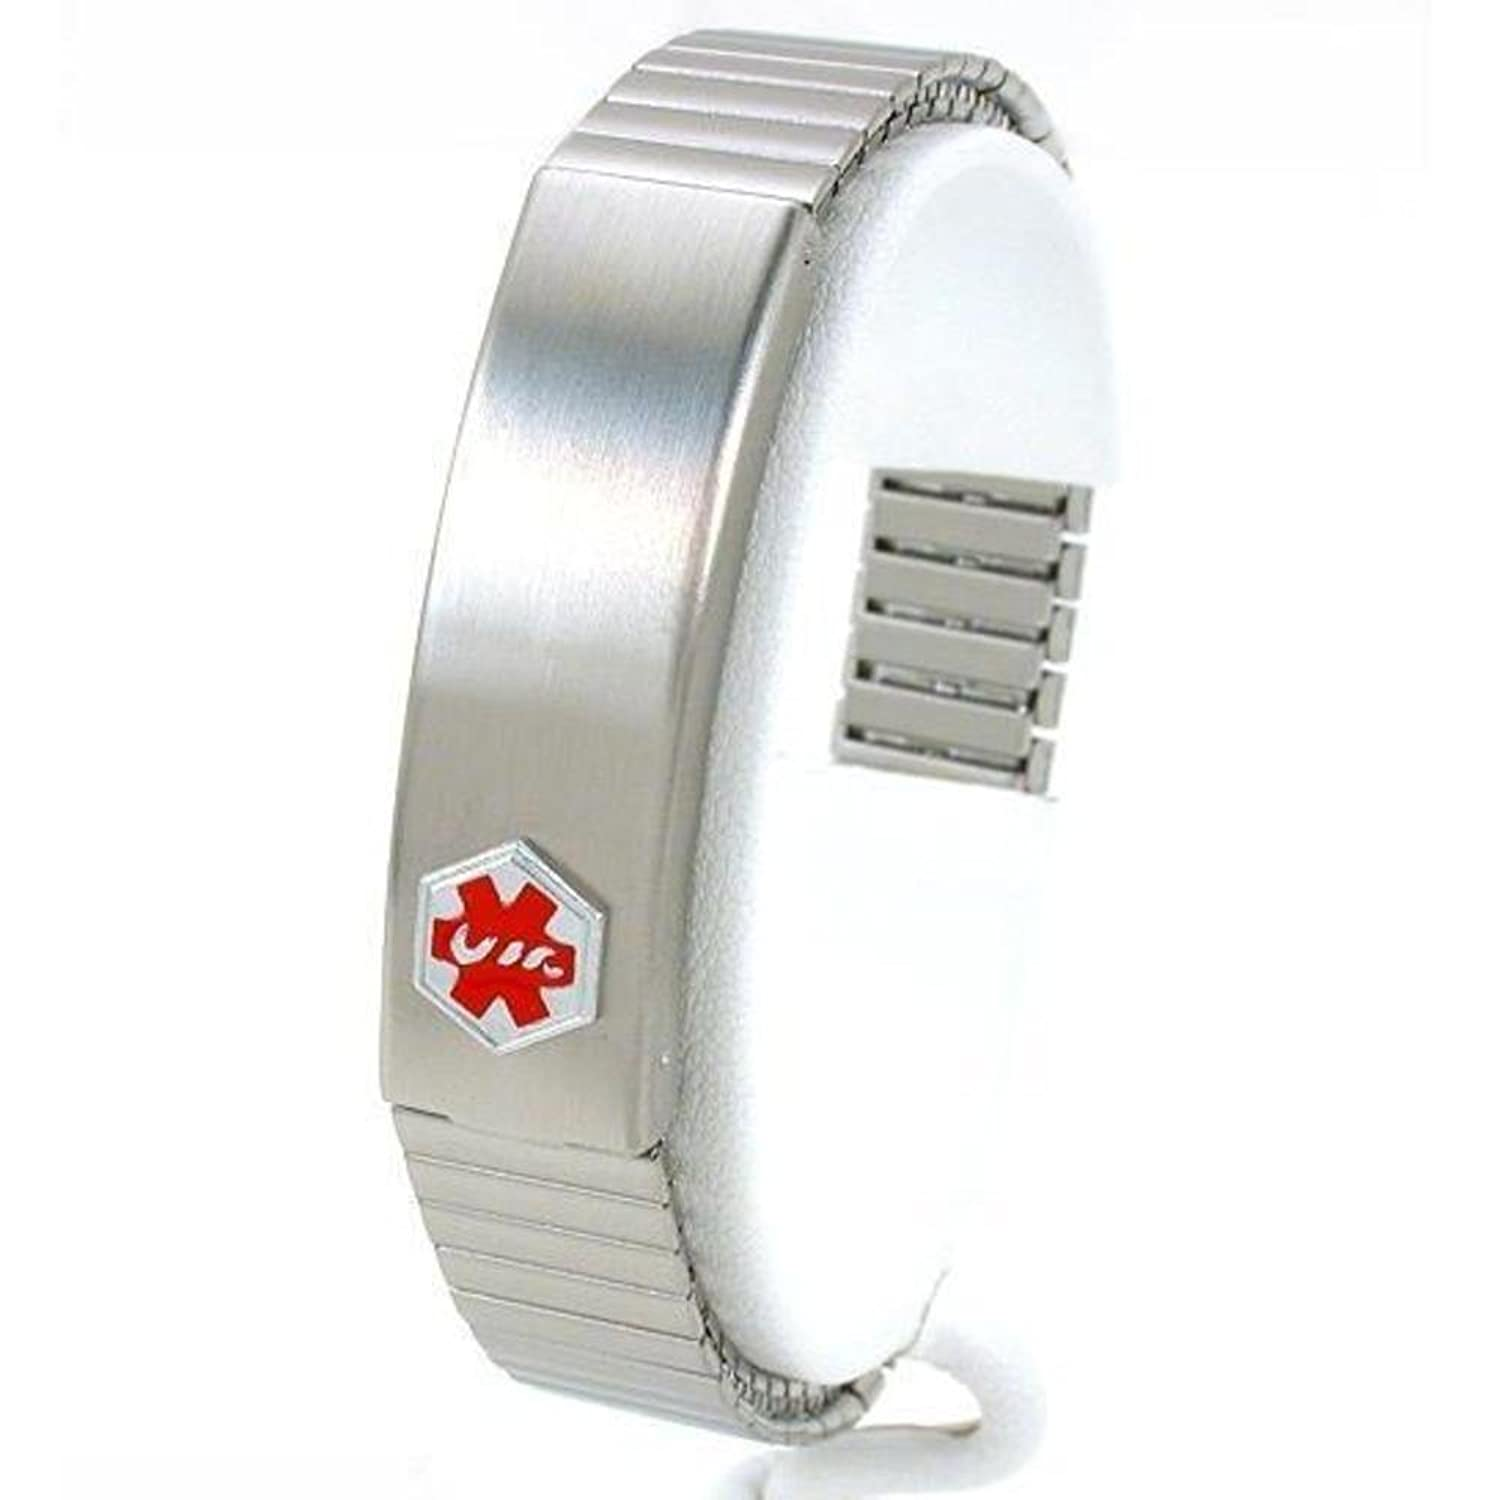 cuban s engraving alert products mens link silver information medical id heavy engraved mm men bracelet sterling